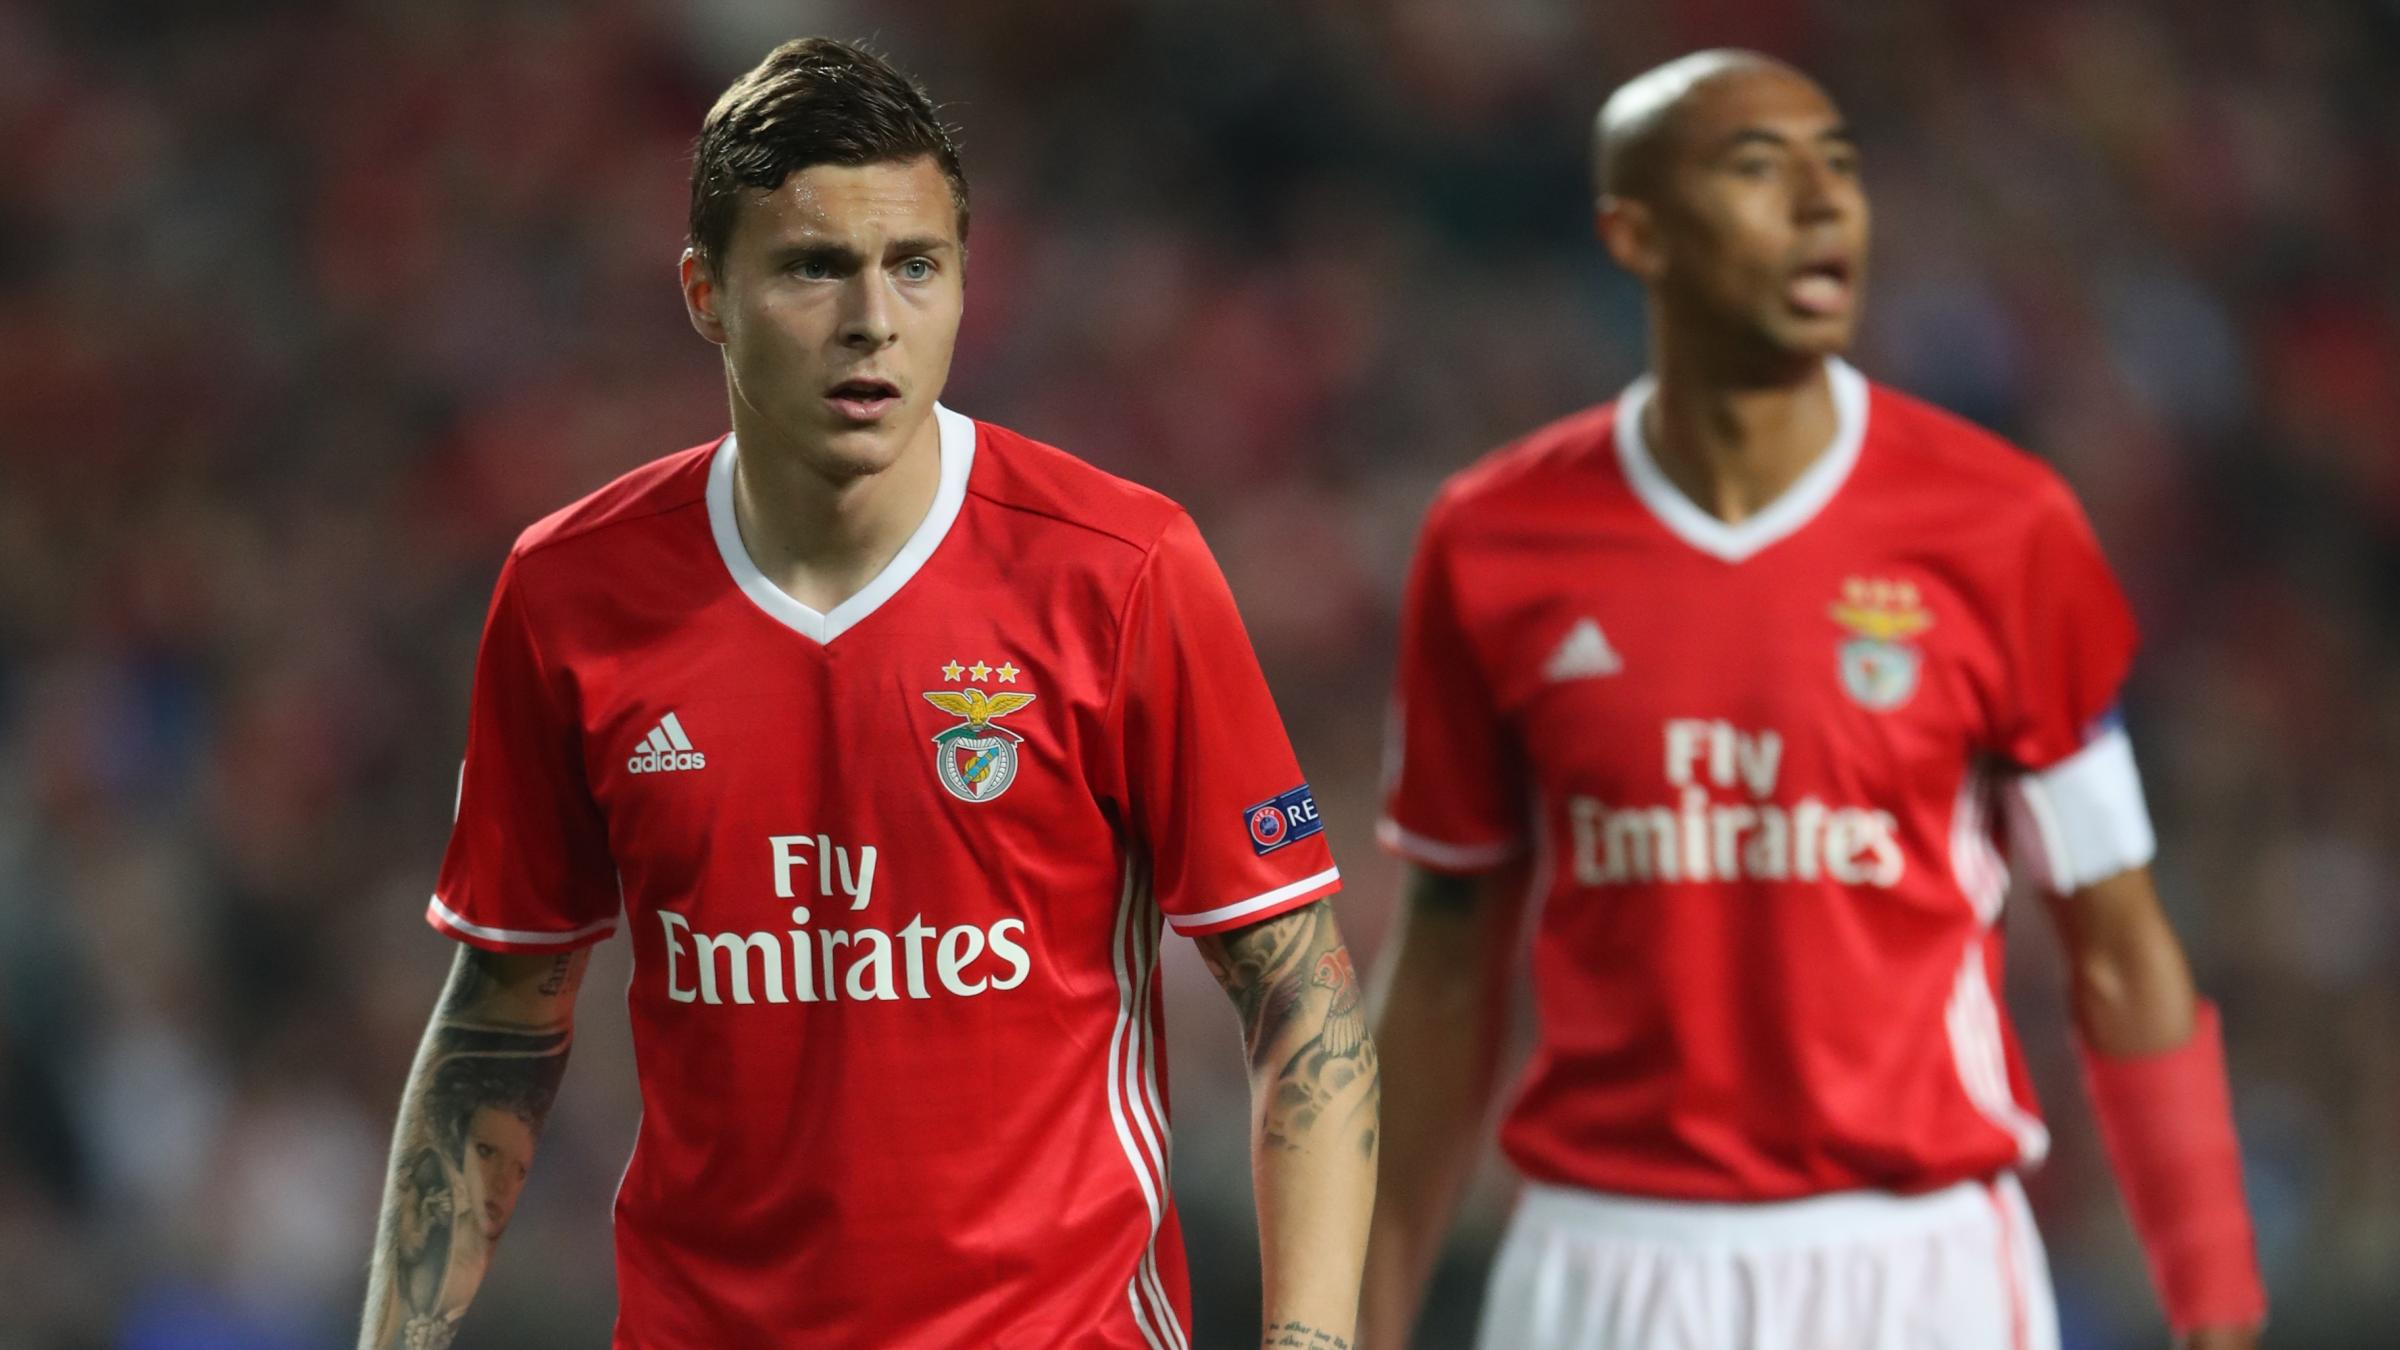 Manchester United sign Victor Lindelof from Benfica